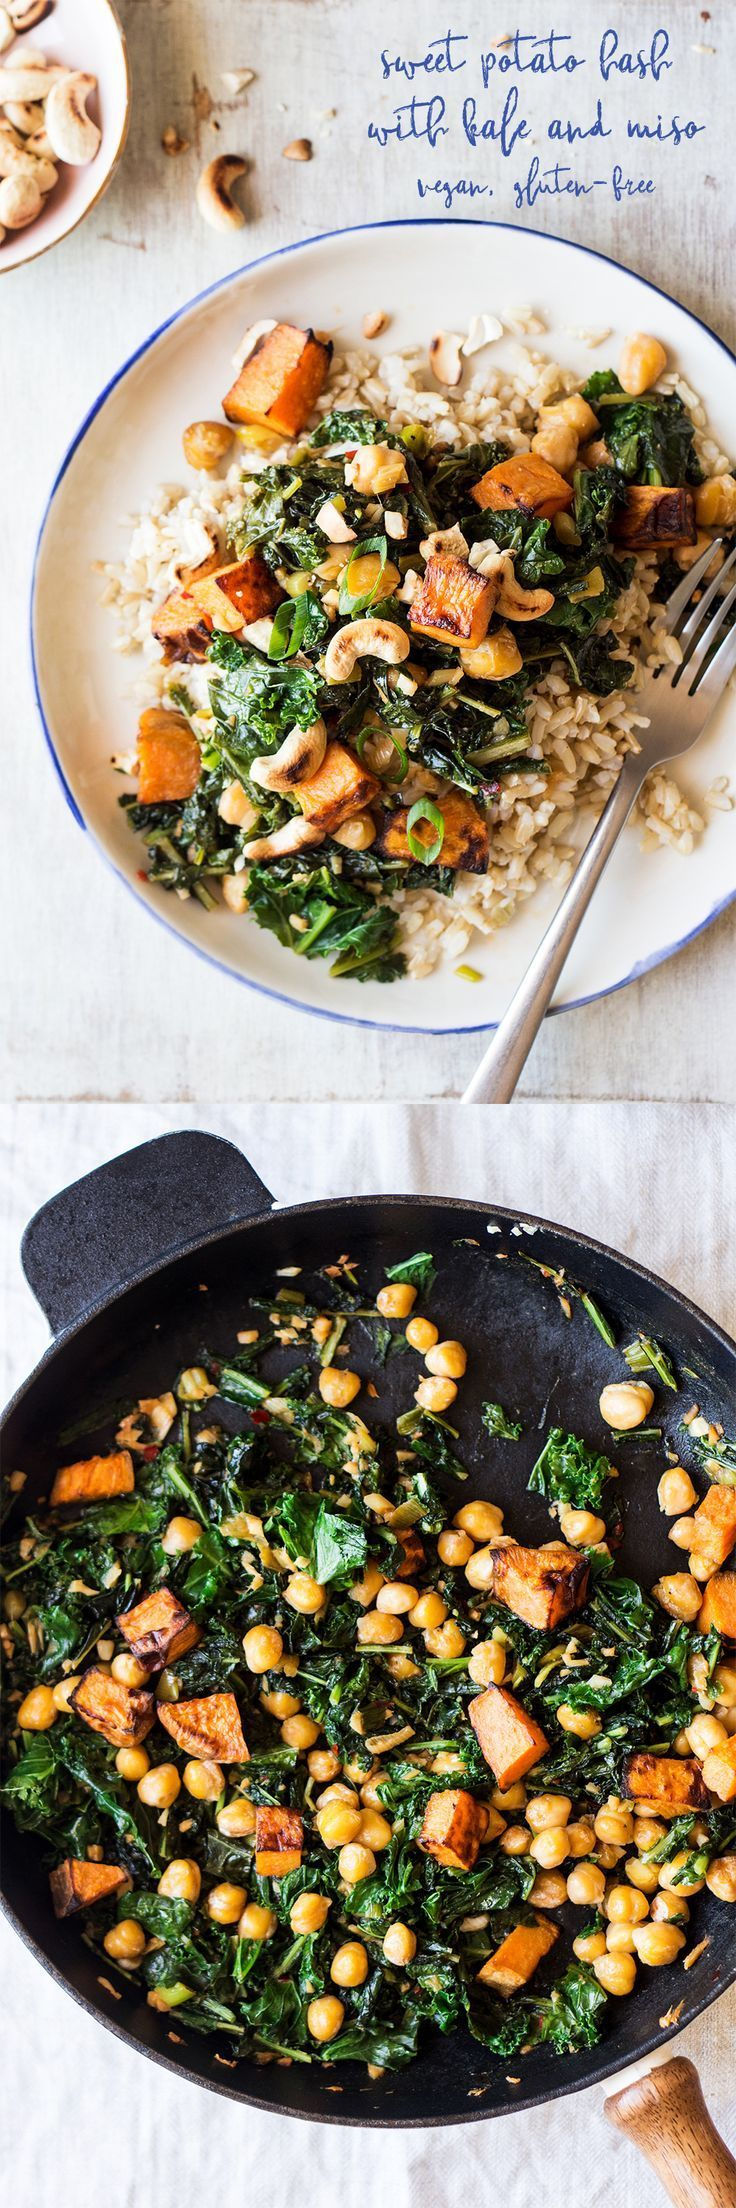 Sweet Potato Hash With Kale And Miso